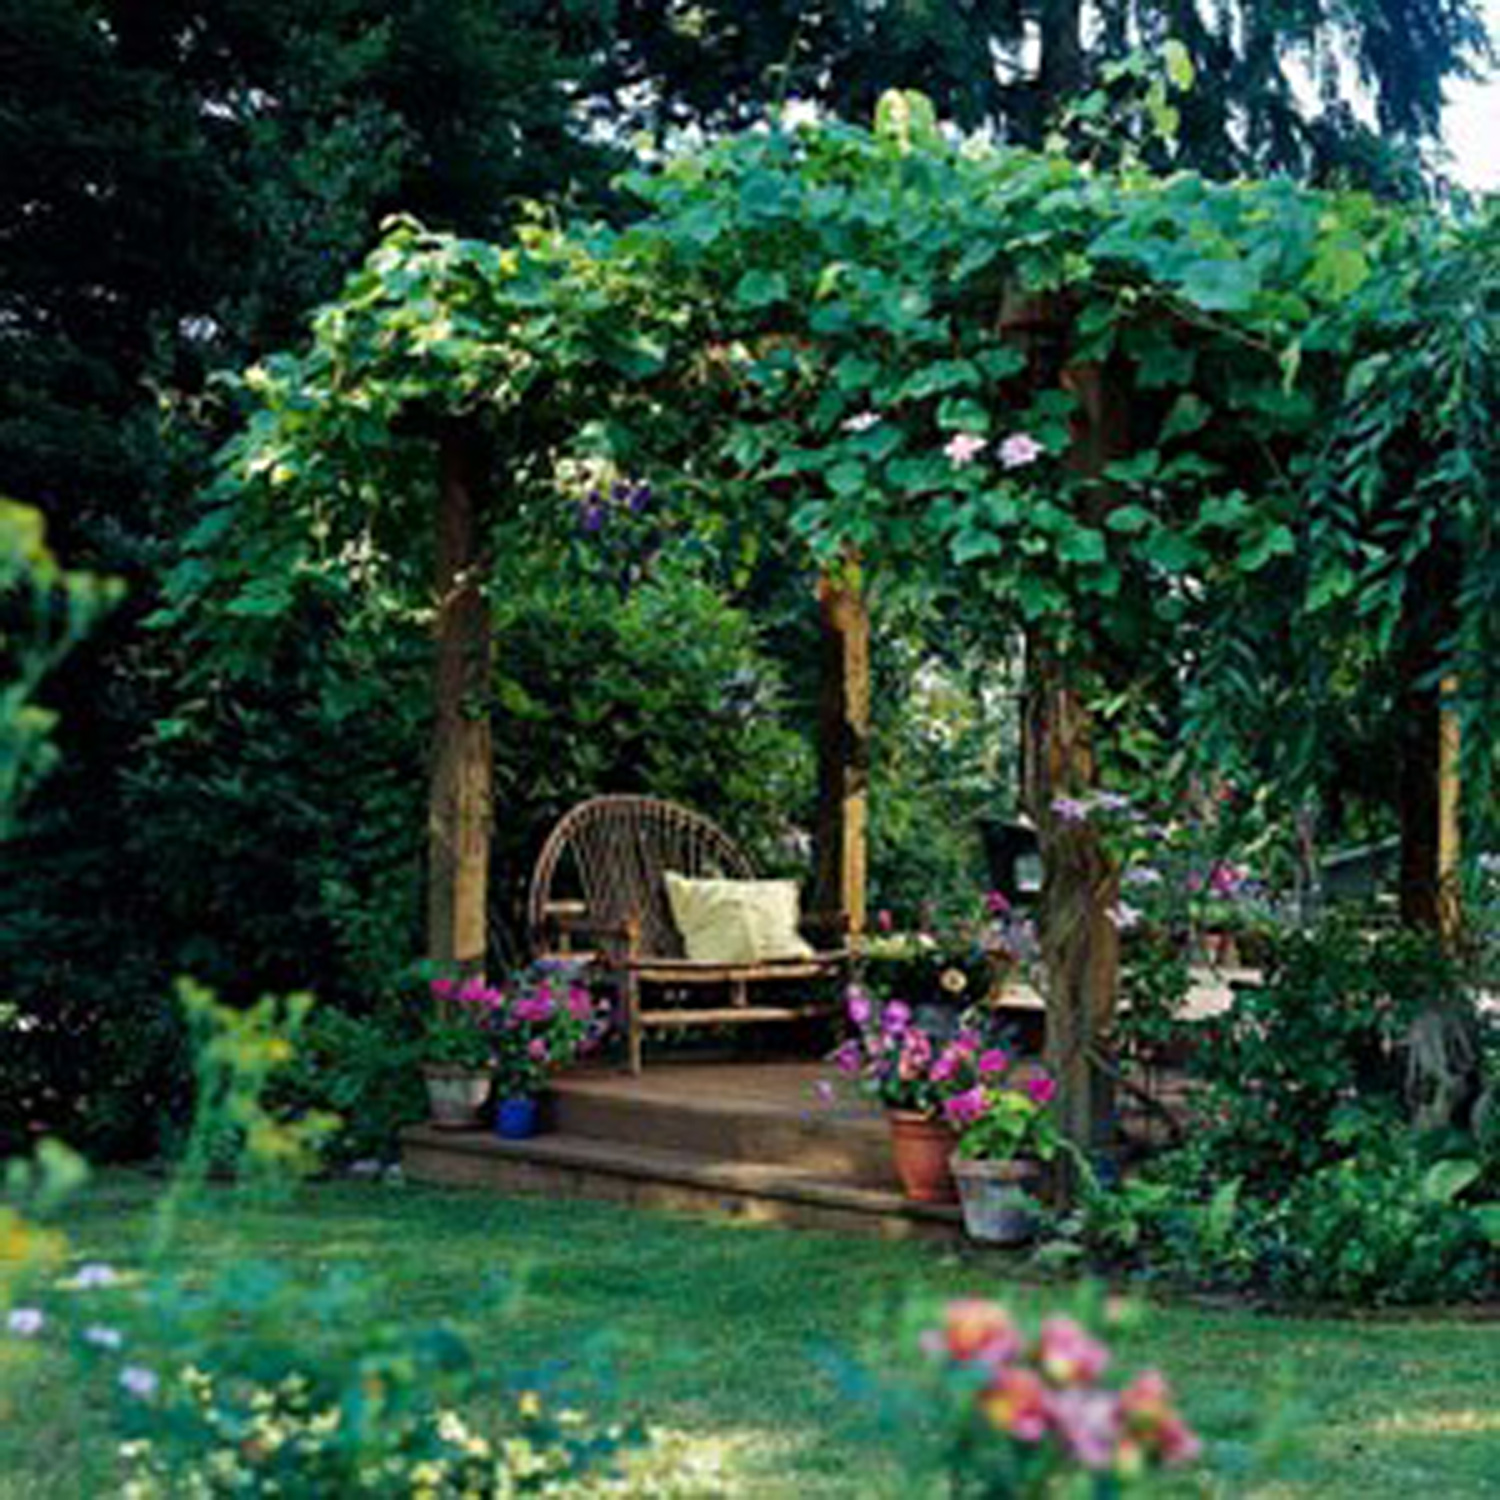 Ideas For Garden Design Relax: Katie's House: A Walk In The Garden And Pergola Plans